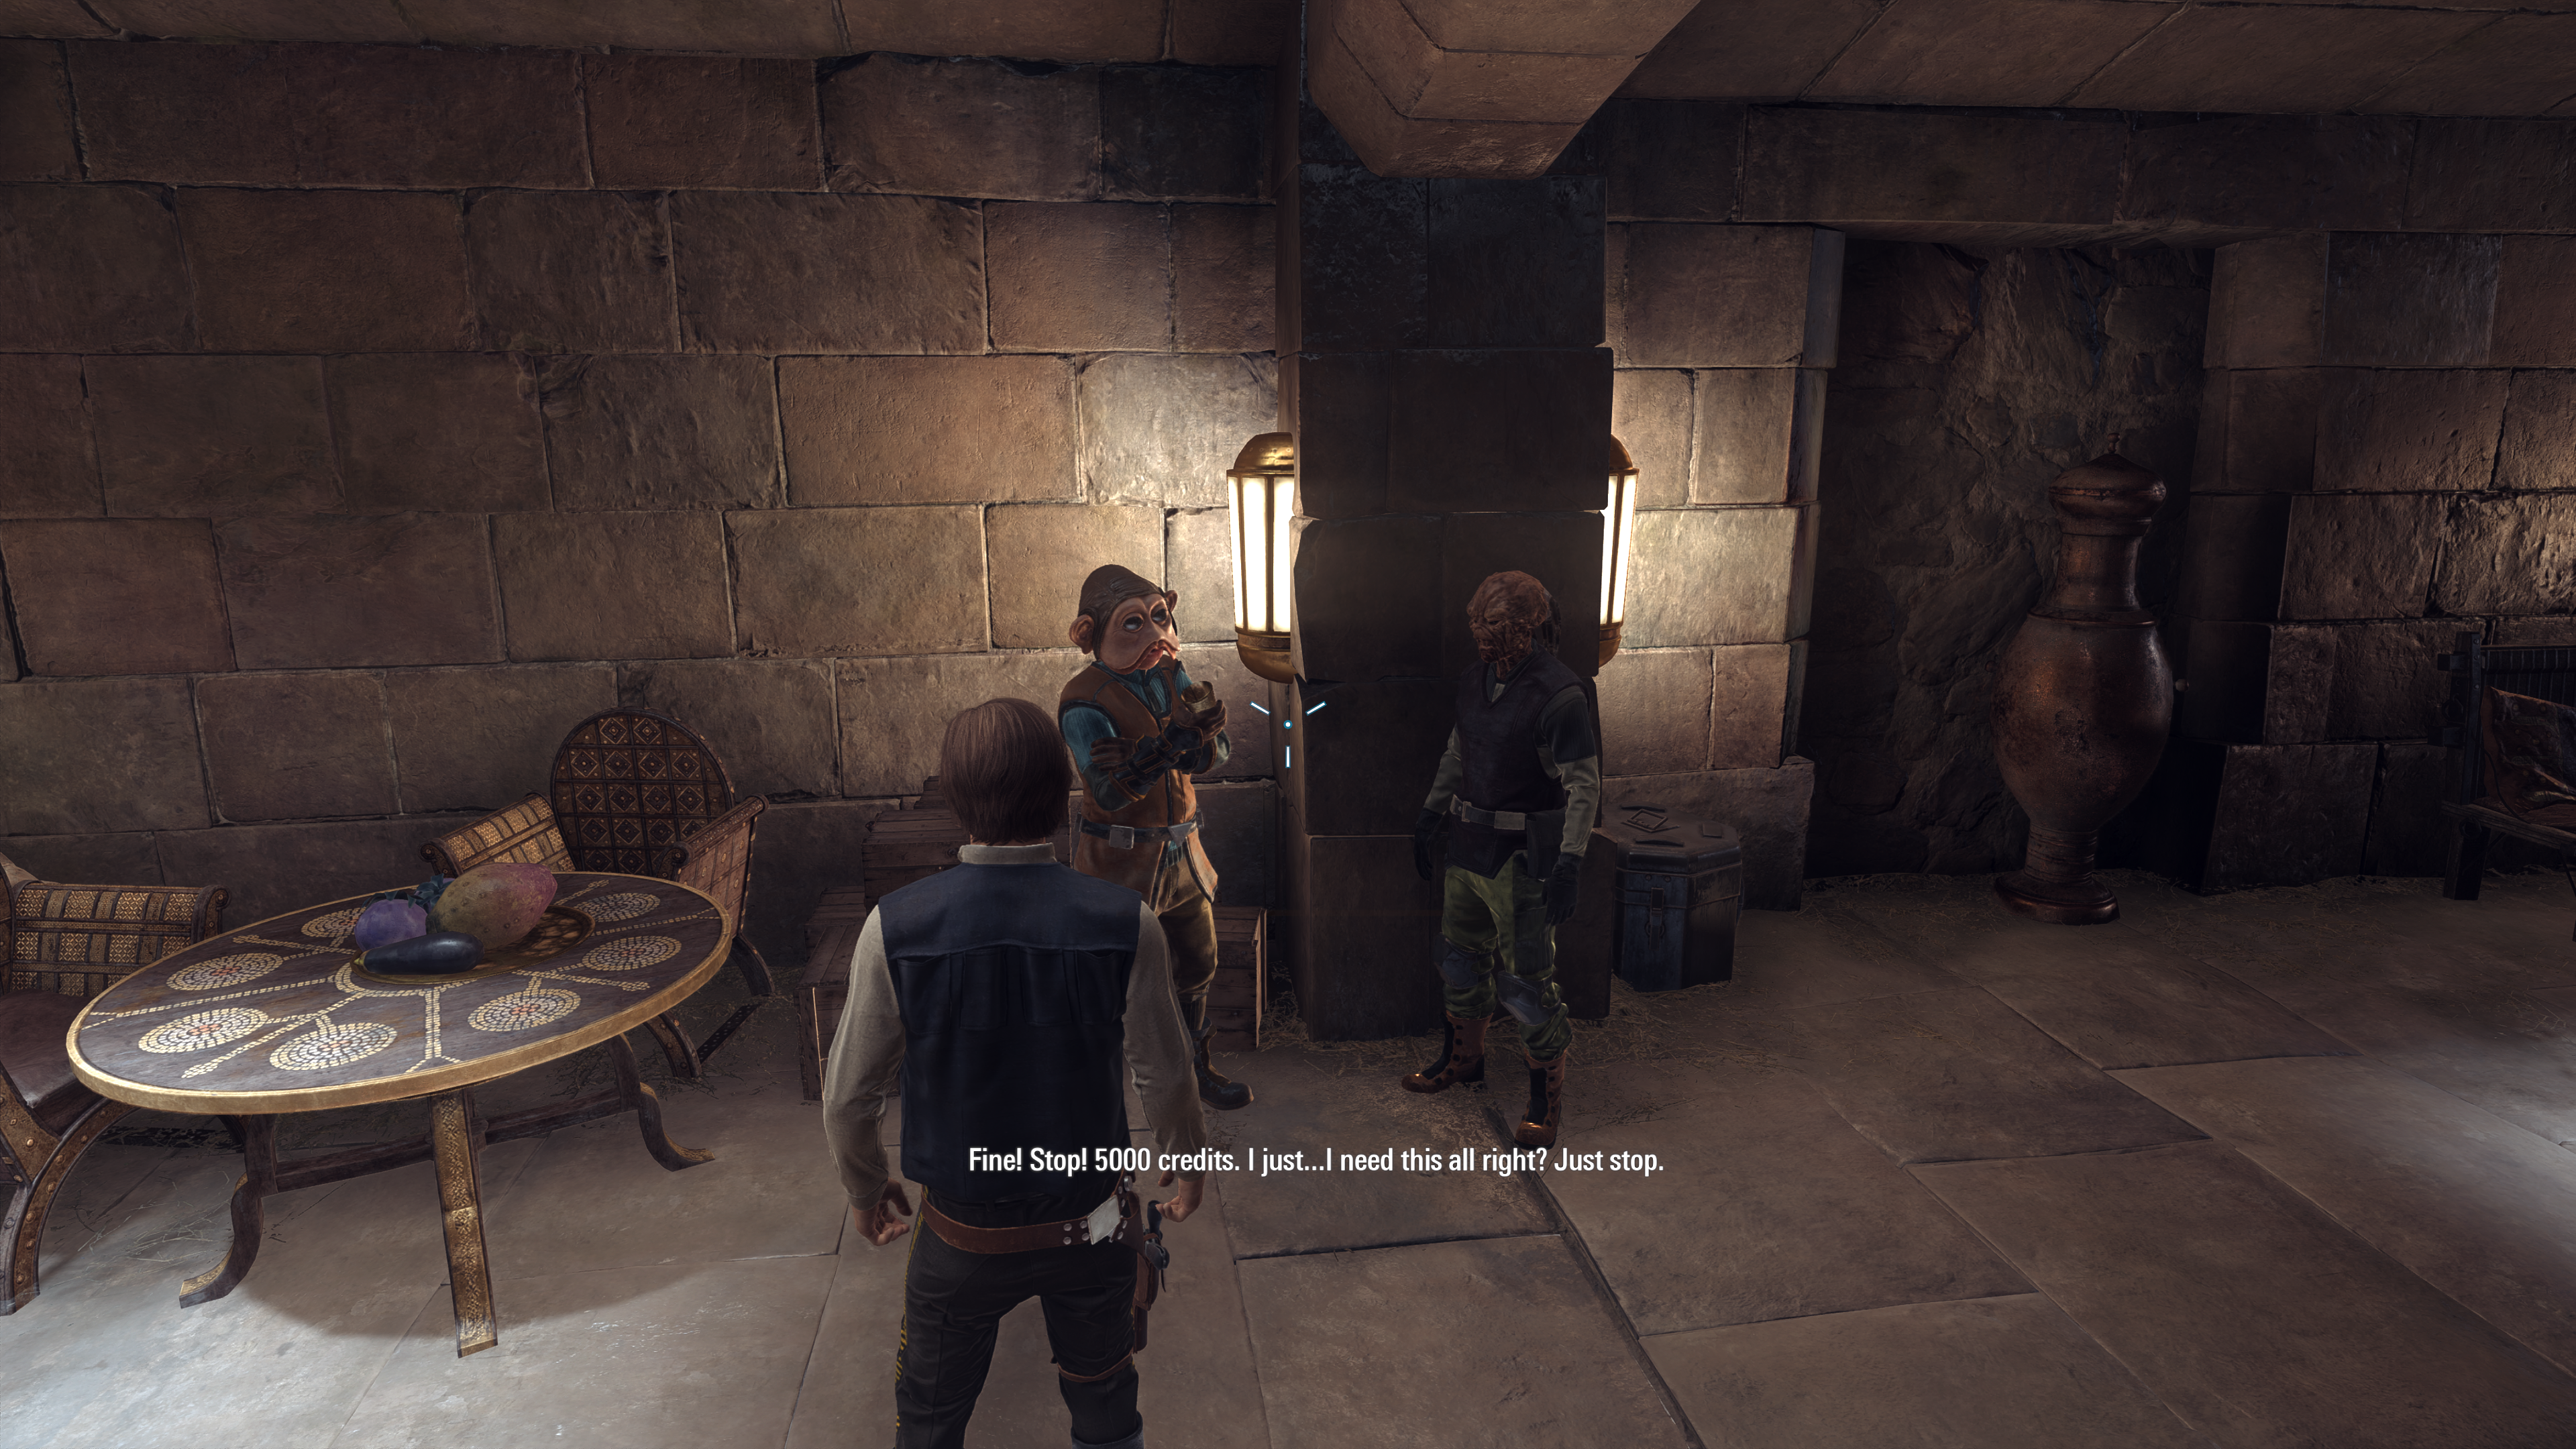 During one very, very slow mission, Han Solo overhears a few conversations. This one, about people bickering over how many credits a debtor should pay, feels waaaay too on-the-nose after this week's loot box debacle.